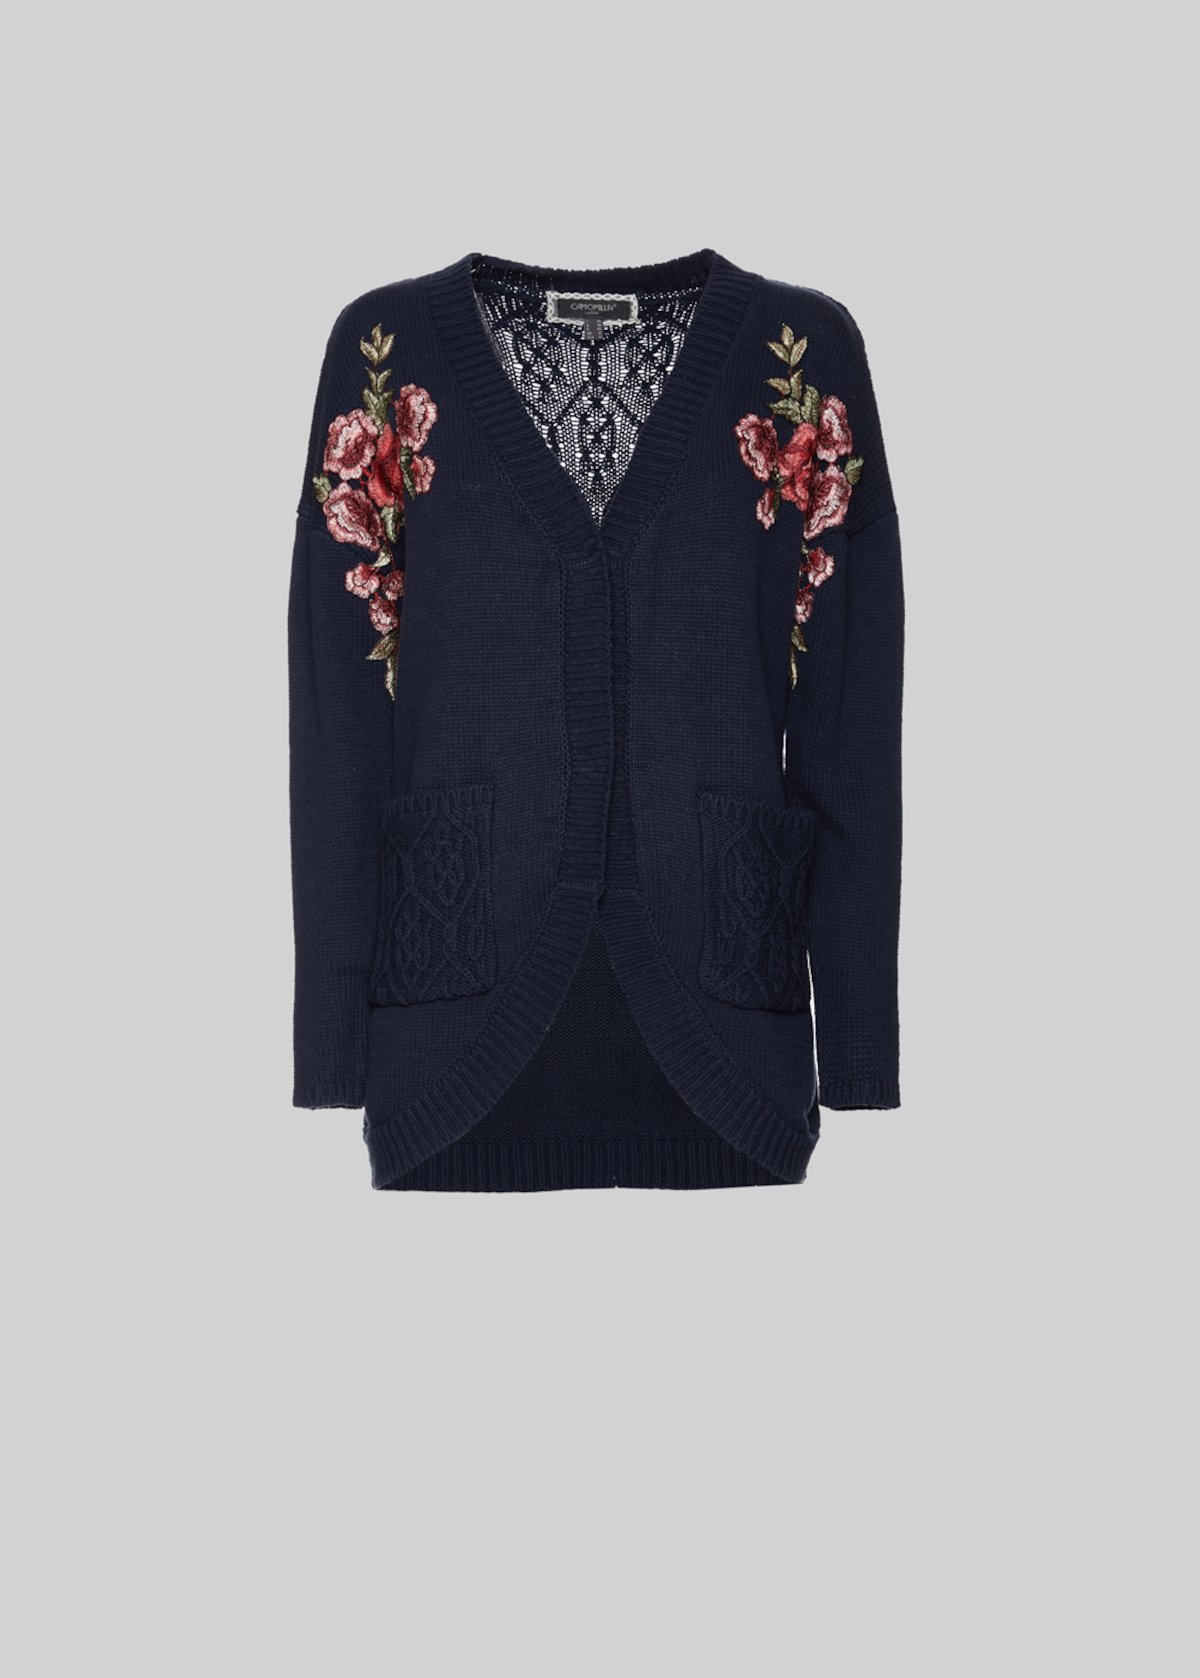 Conrado Cardigan with pockets and flowers patch detail